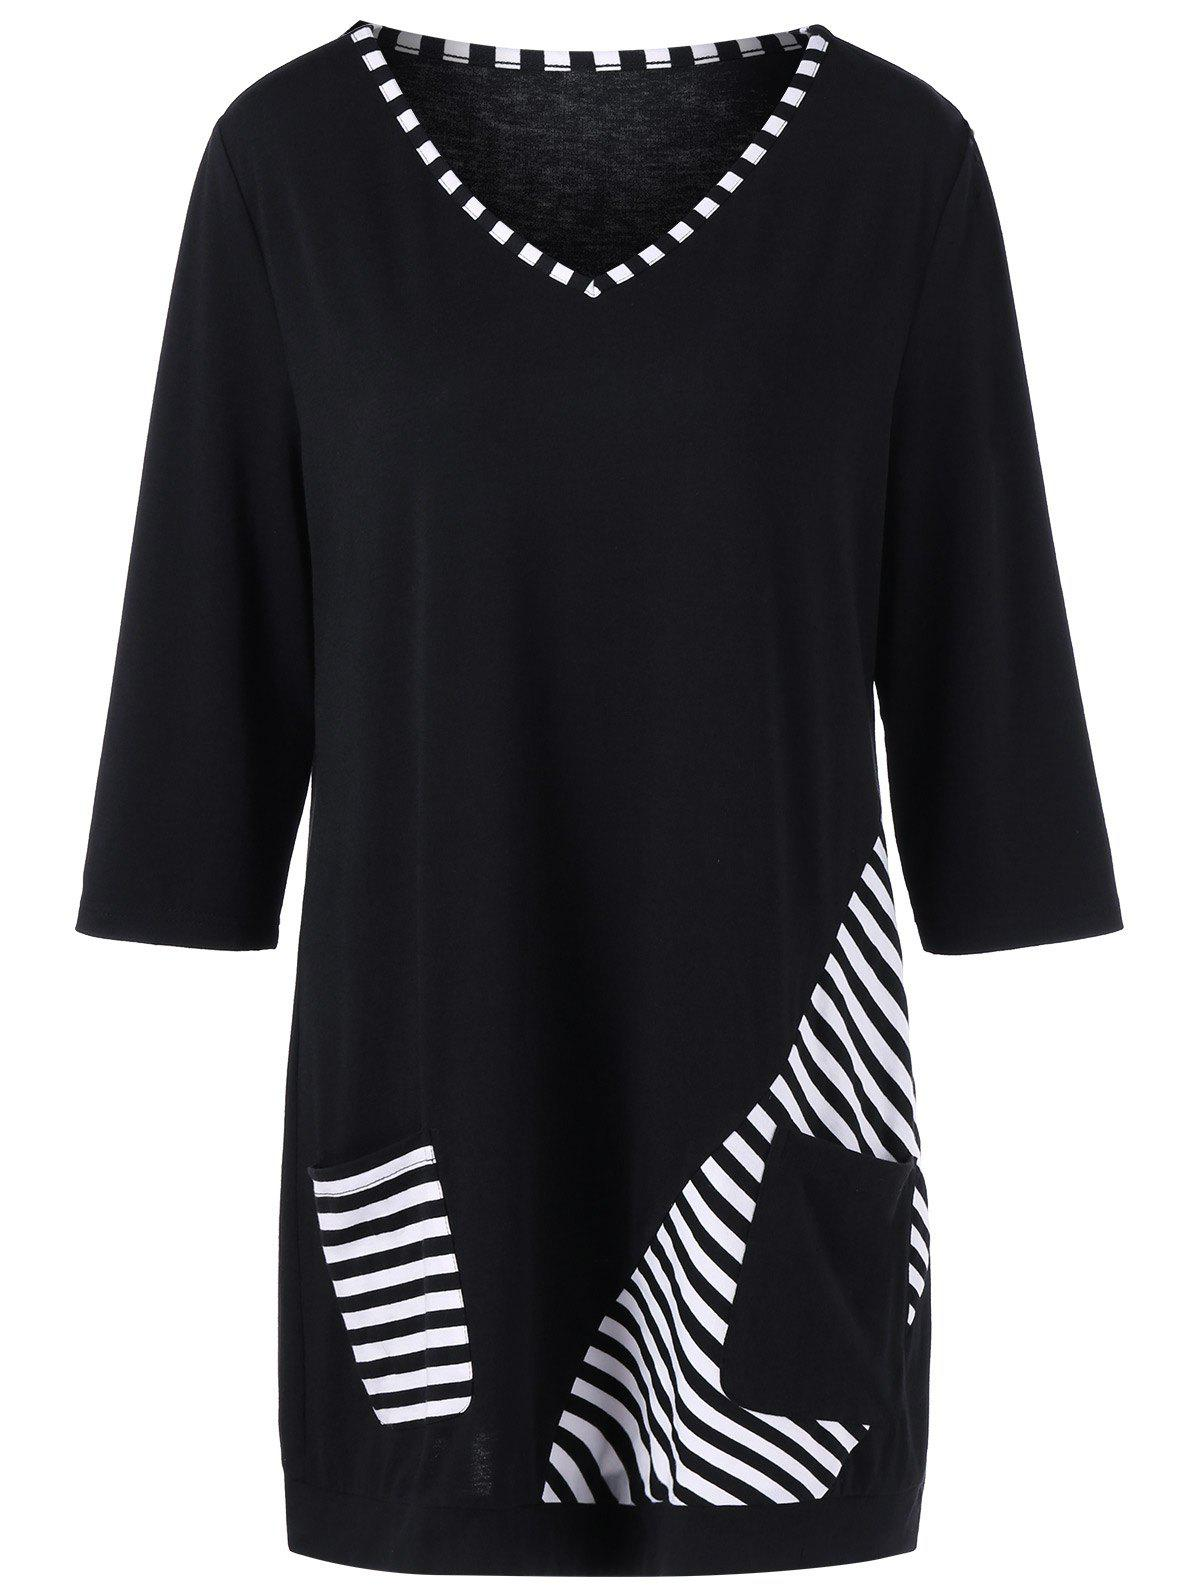 Plus Size Striped Trim Pockets Longline T-ShirtWOMEN<br><br>Size: 4XL; Color: WHITE AND BLACK; Material: Polyester,Spandex; Shirt Length: Long; Sleeve Length: Three Quarter; Collar: V-Neck; Style: Casual; Season: Summer; Pattern Type: Striped; Weight: 0.3600kg; Package Contents: 1 x T-Shirt;